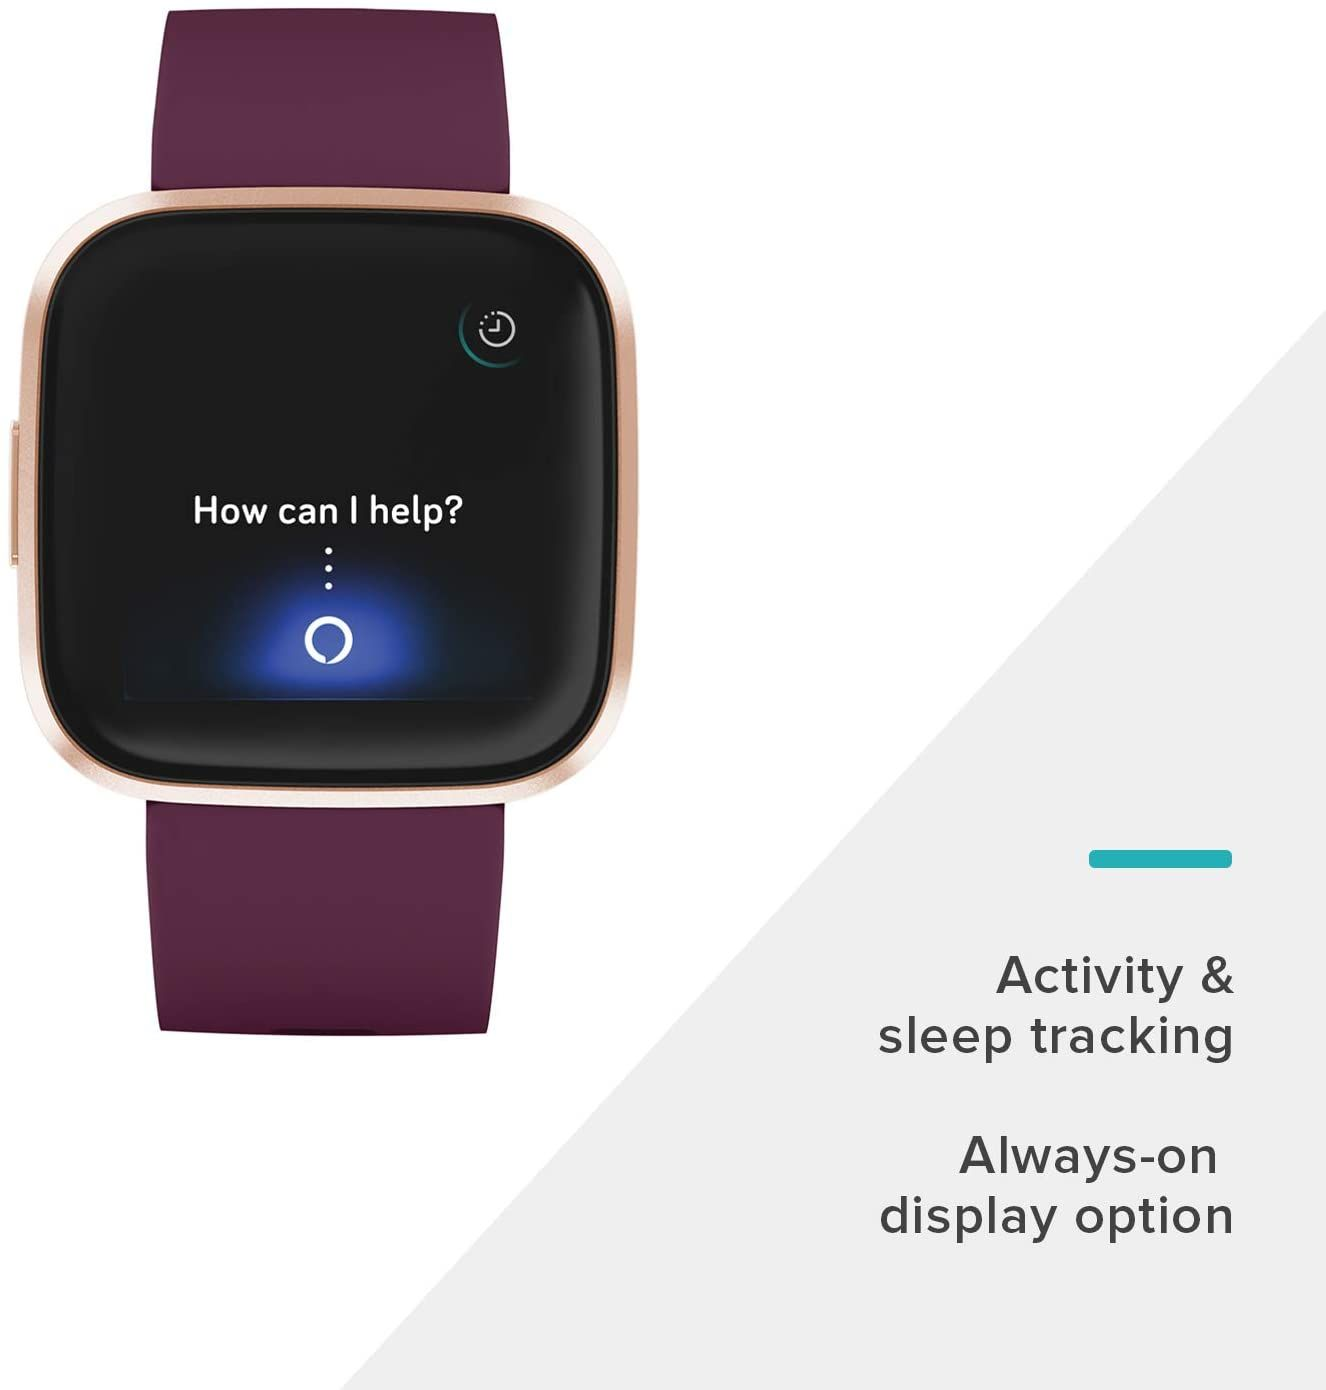 fbd2679c7729e95451fef2327484a70d - How To Get Free Music On Fitbit Versa 2